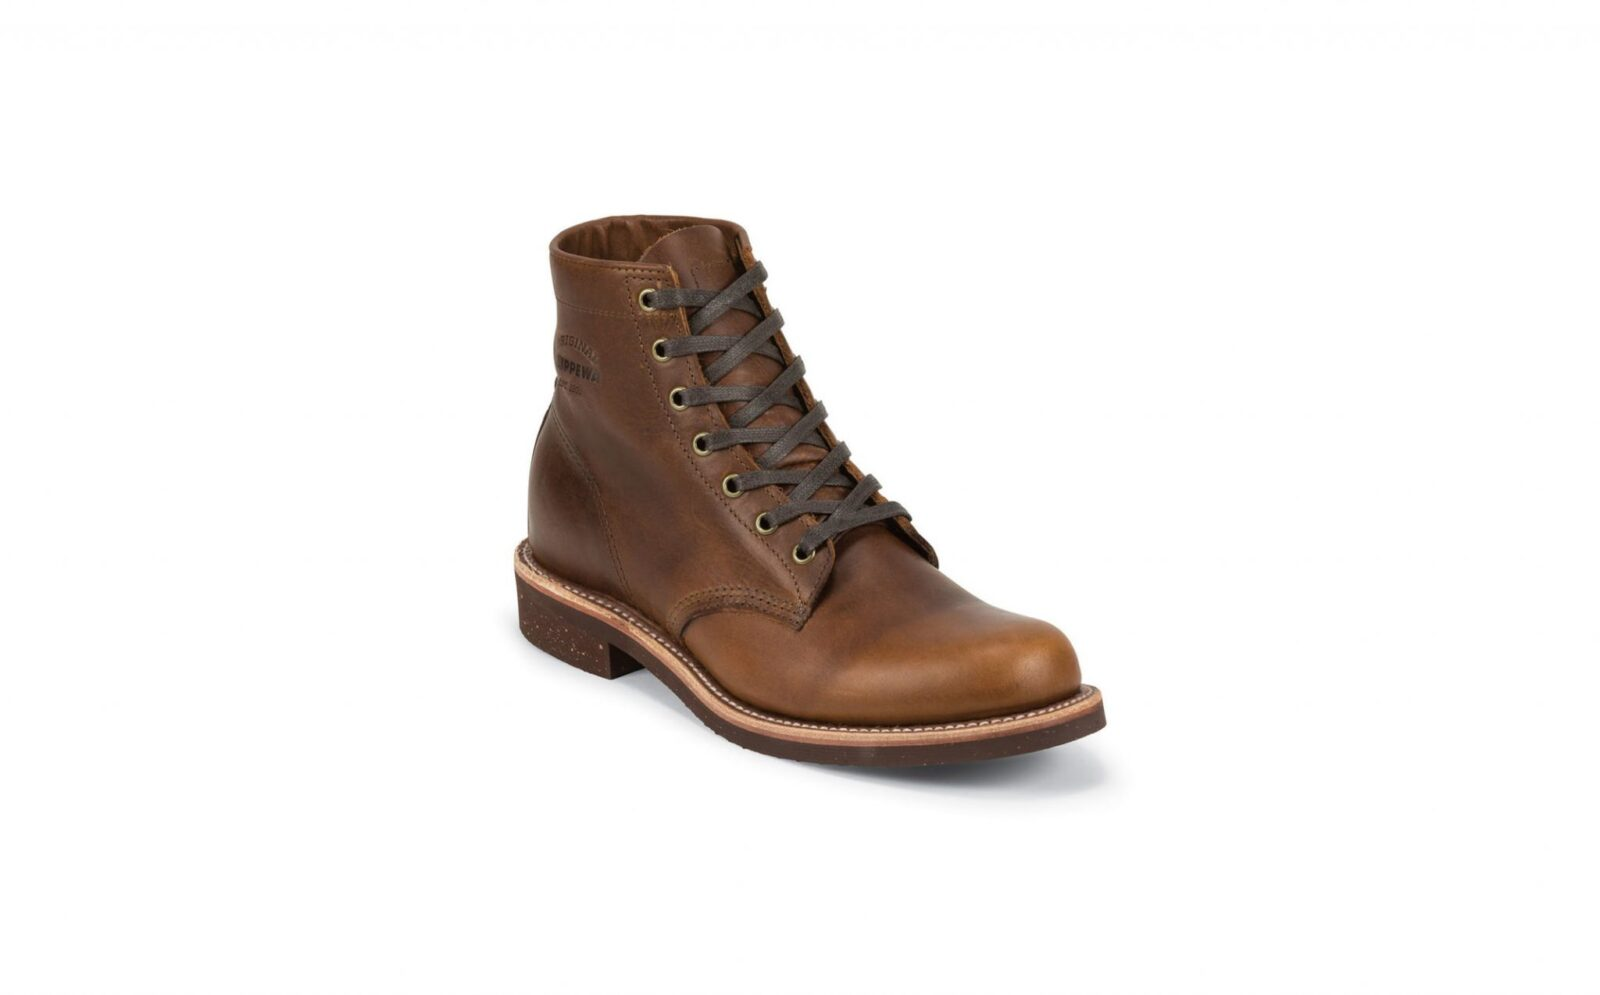 Original Chippewa Service Boot 1600x995 - Original Chippewa Service Boot